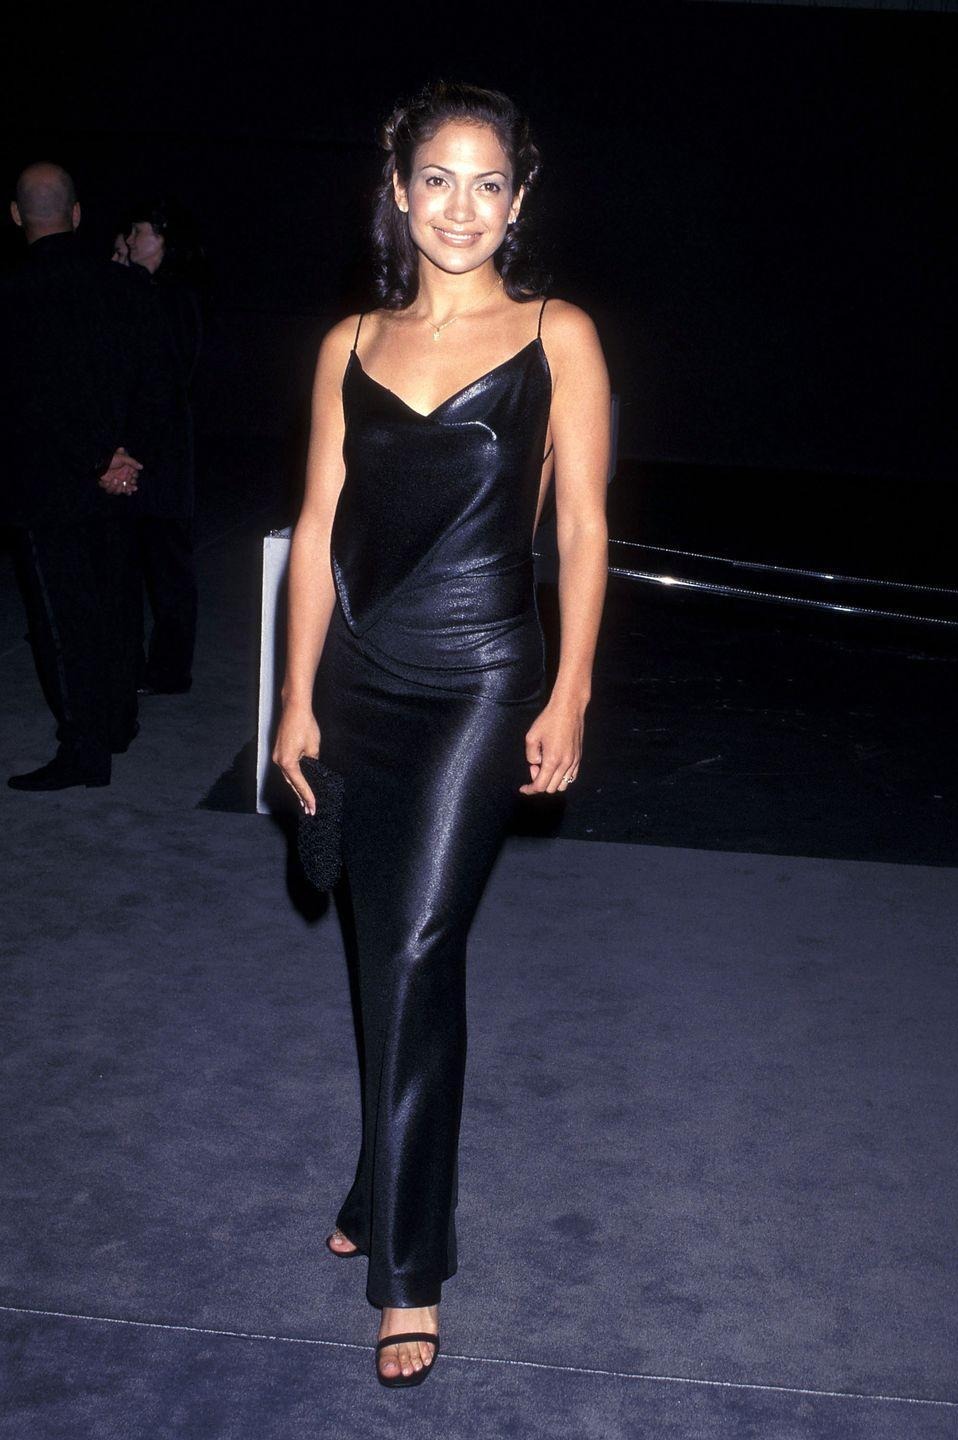 <p>At a Benefit Dinner to honour Tom Ford - who was then at Gucci - in Santa Monica, California.</p>